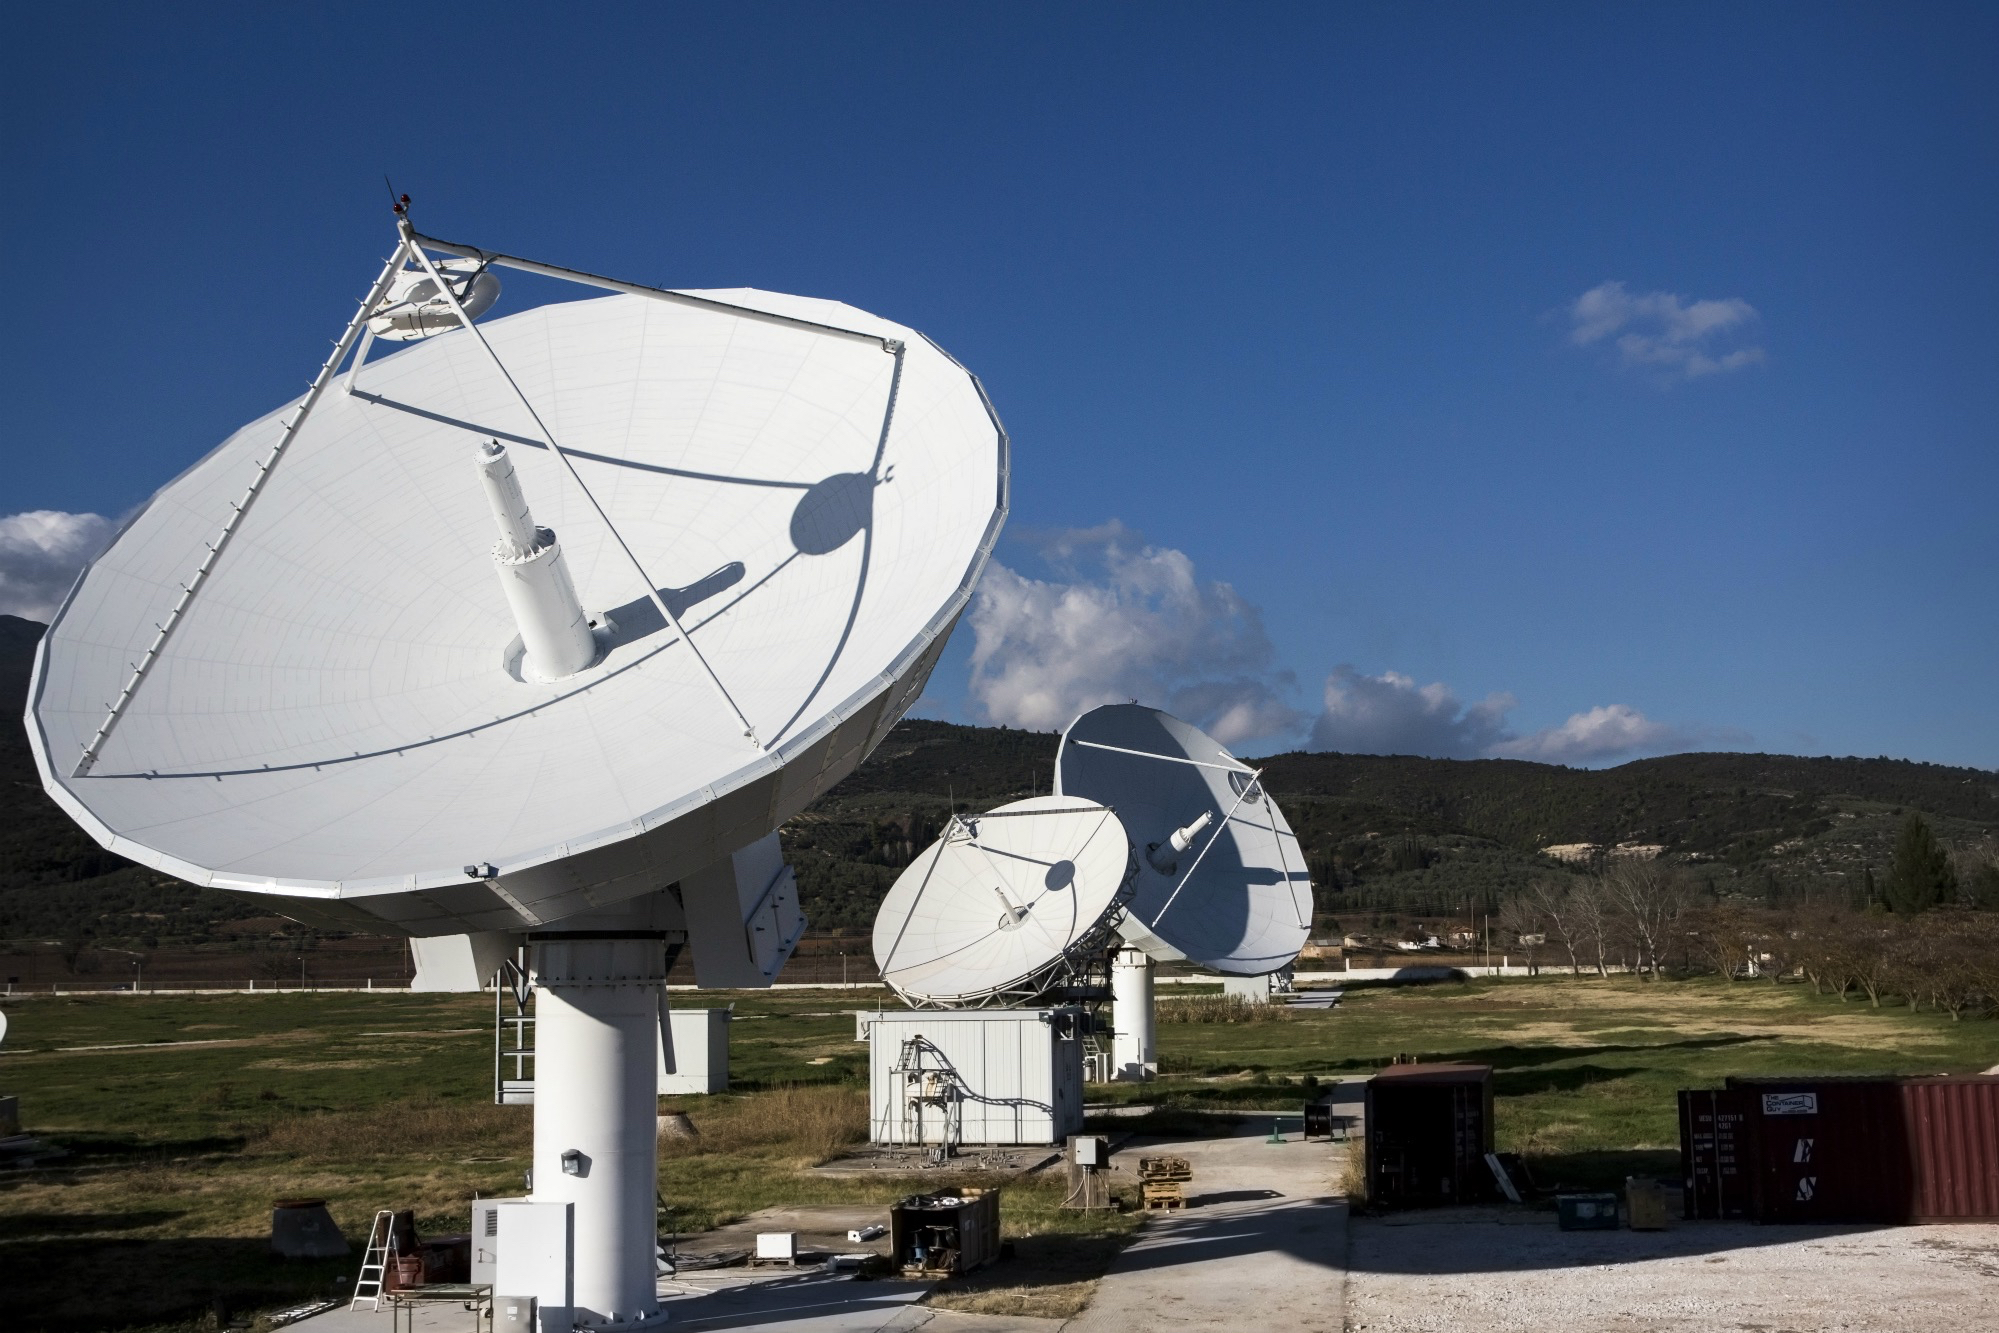 The European Aviation Network satellite access station will serve as a gateway between Inmarsat's S-band satellite and the internet.